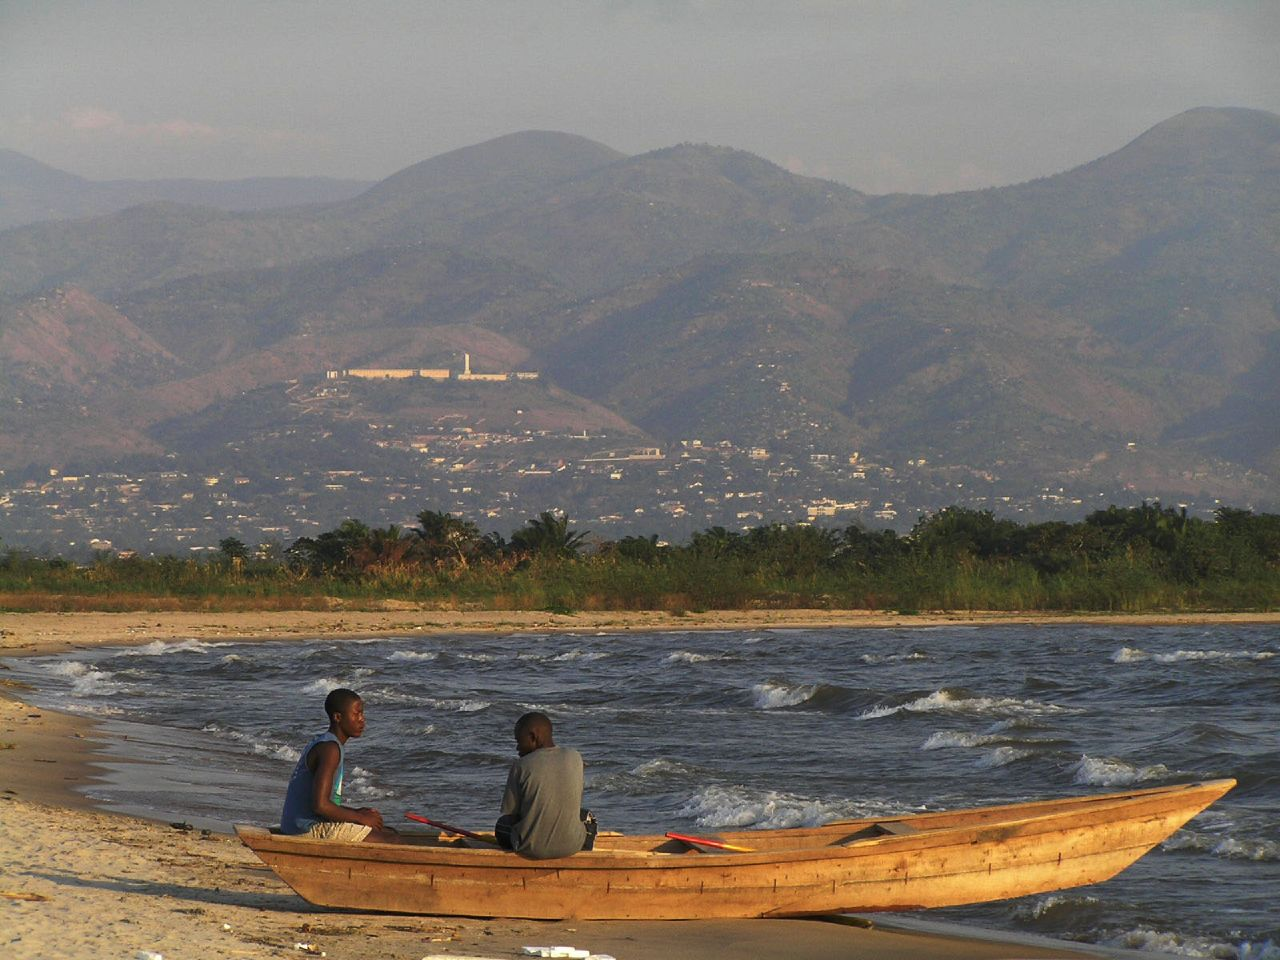 Burundi_-_Lake_Tanganyika_fisheries.jpg